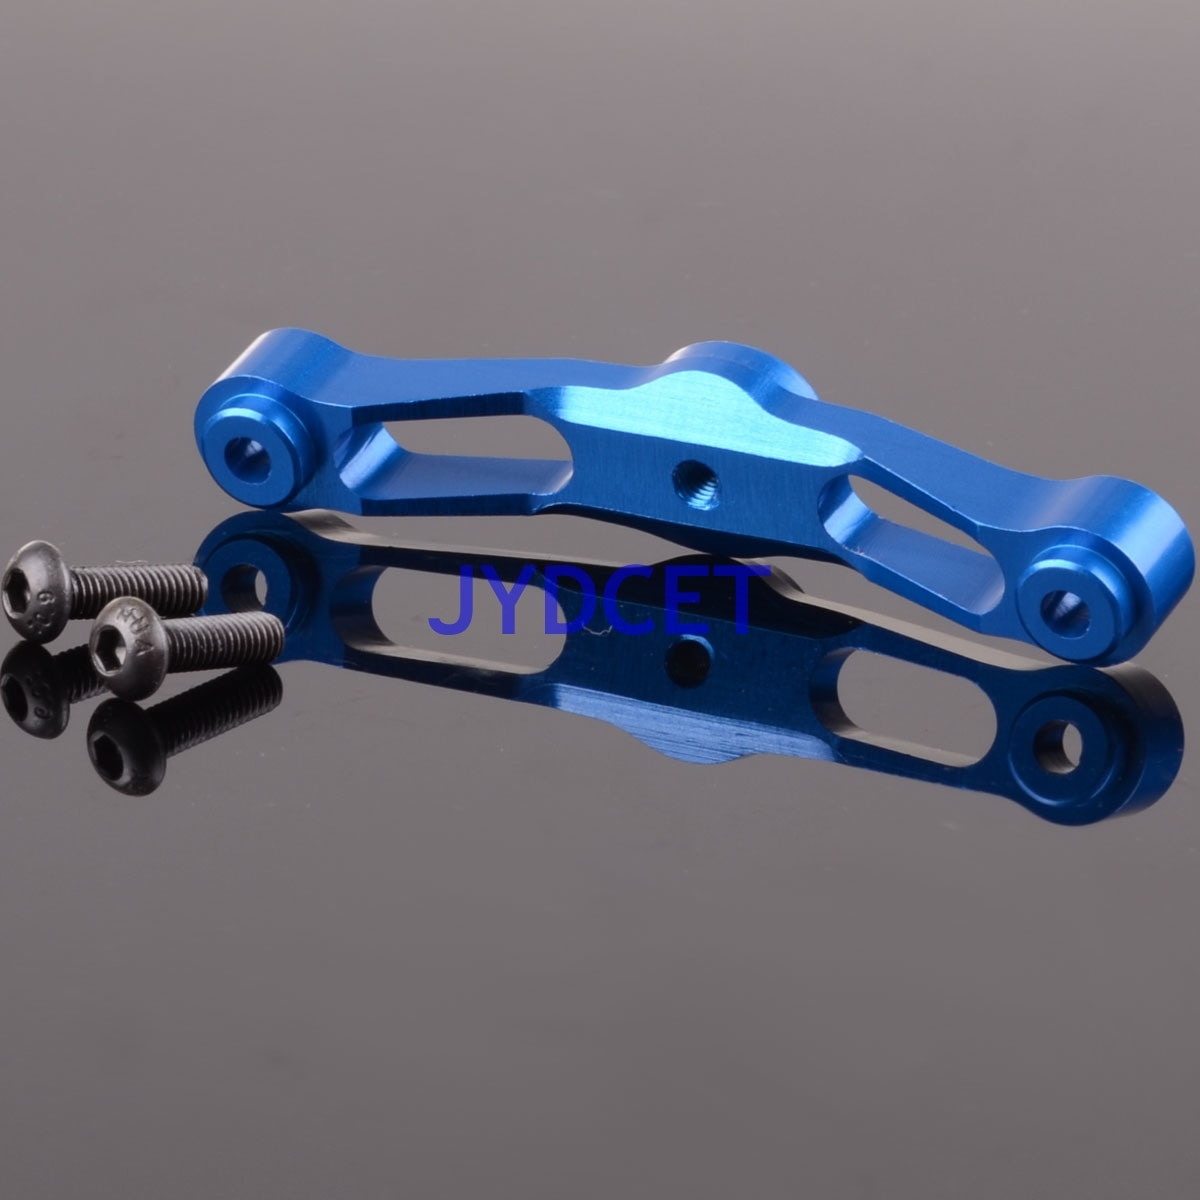 5343X Aluminum Steering Post Holder Assembly For RC Car 1/10 Traxxas REVO E-REVO 2.0 Summit Slayer Pro 4X4 enlarge